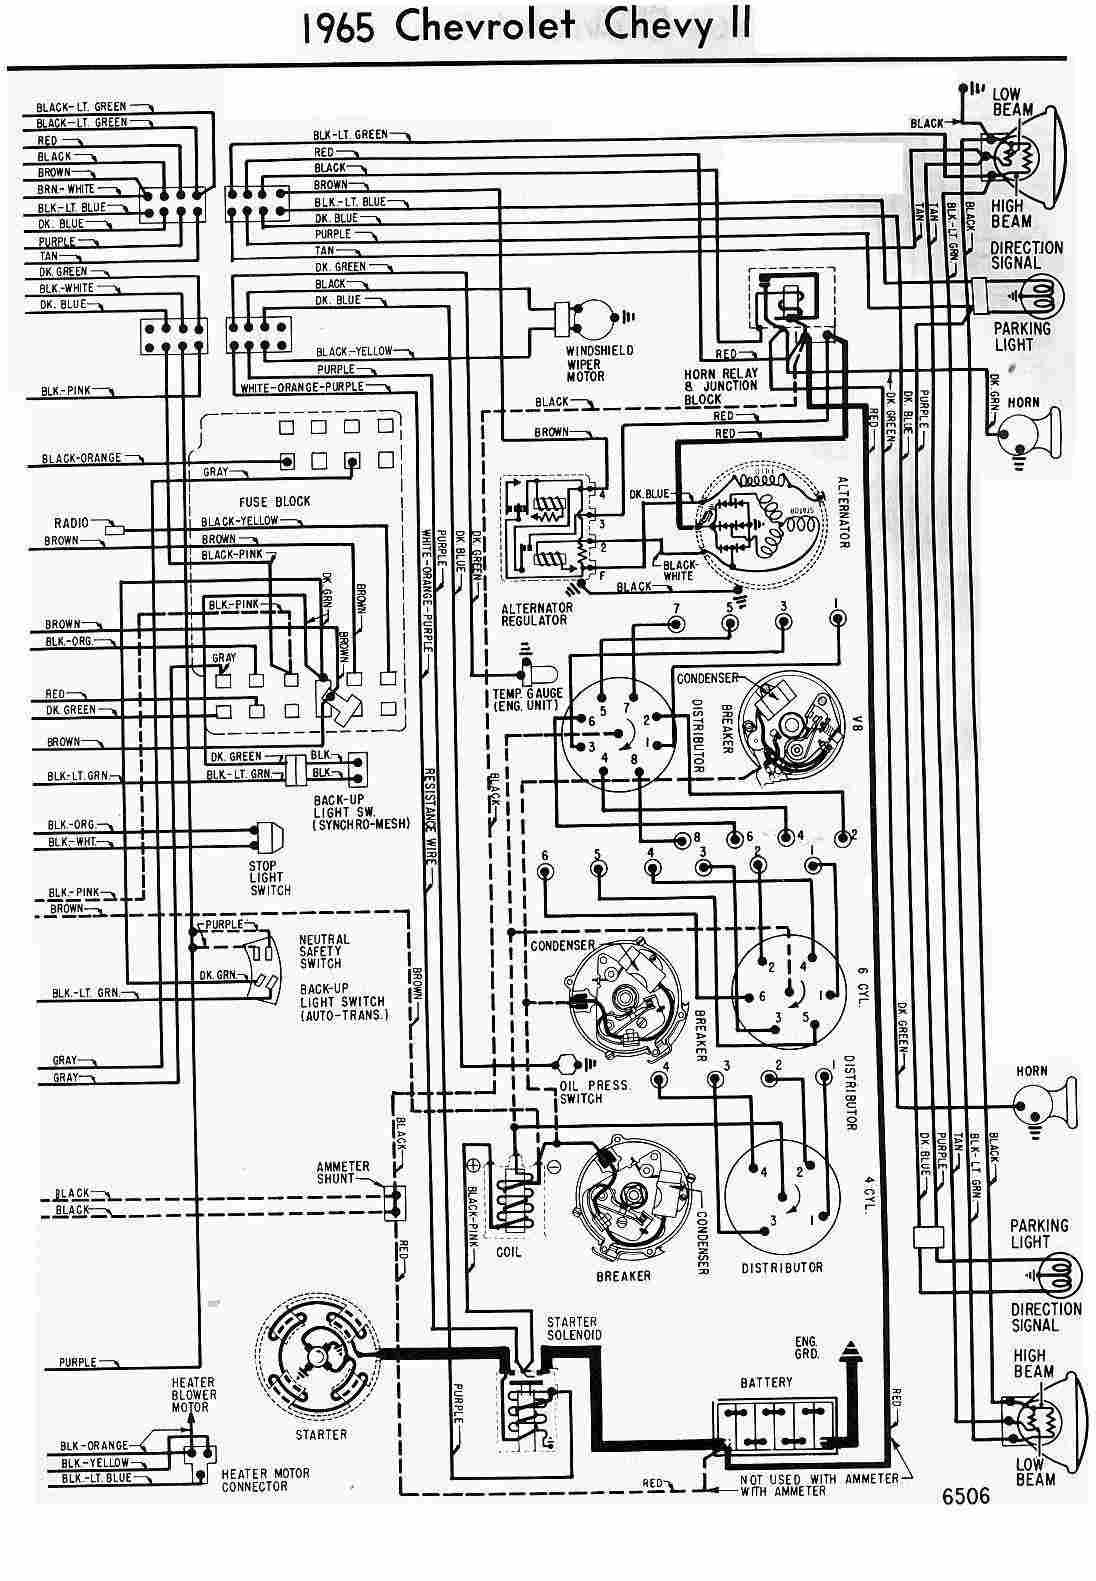 Painless Wiring Switch Panel Diagram - Wiring Solutions on hot rod switch, hot rod transformer, hot rod radio, hot rod hoses, hot rod spark plugs, ez2wire harness, hot rod distributor, hot rod master cylinder, hot rod shifter, hot rod brakes, hot rod voltage regulator, hot rod transmission, hot rod motor, hot rod controller, hot rod cable, hot rod drive shaft, hot rod throttle body, hot rod electrical, hot rod pump, hot rod carburetor,